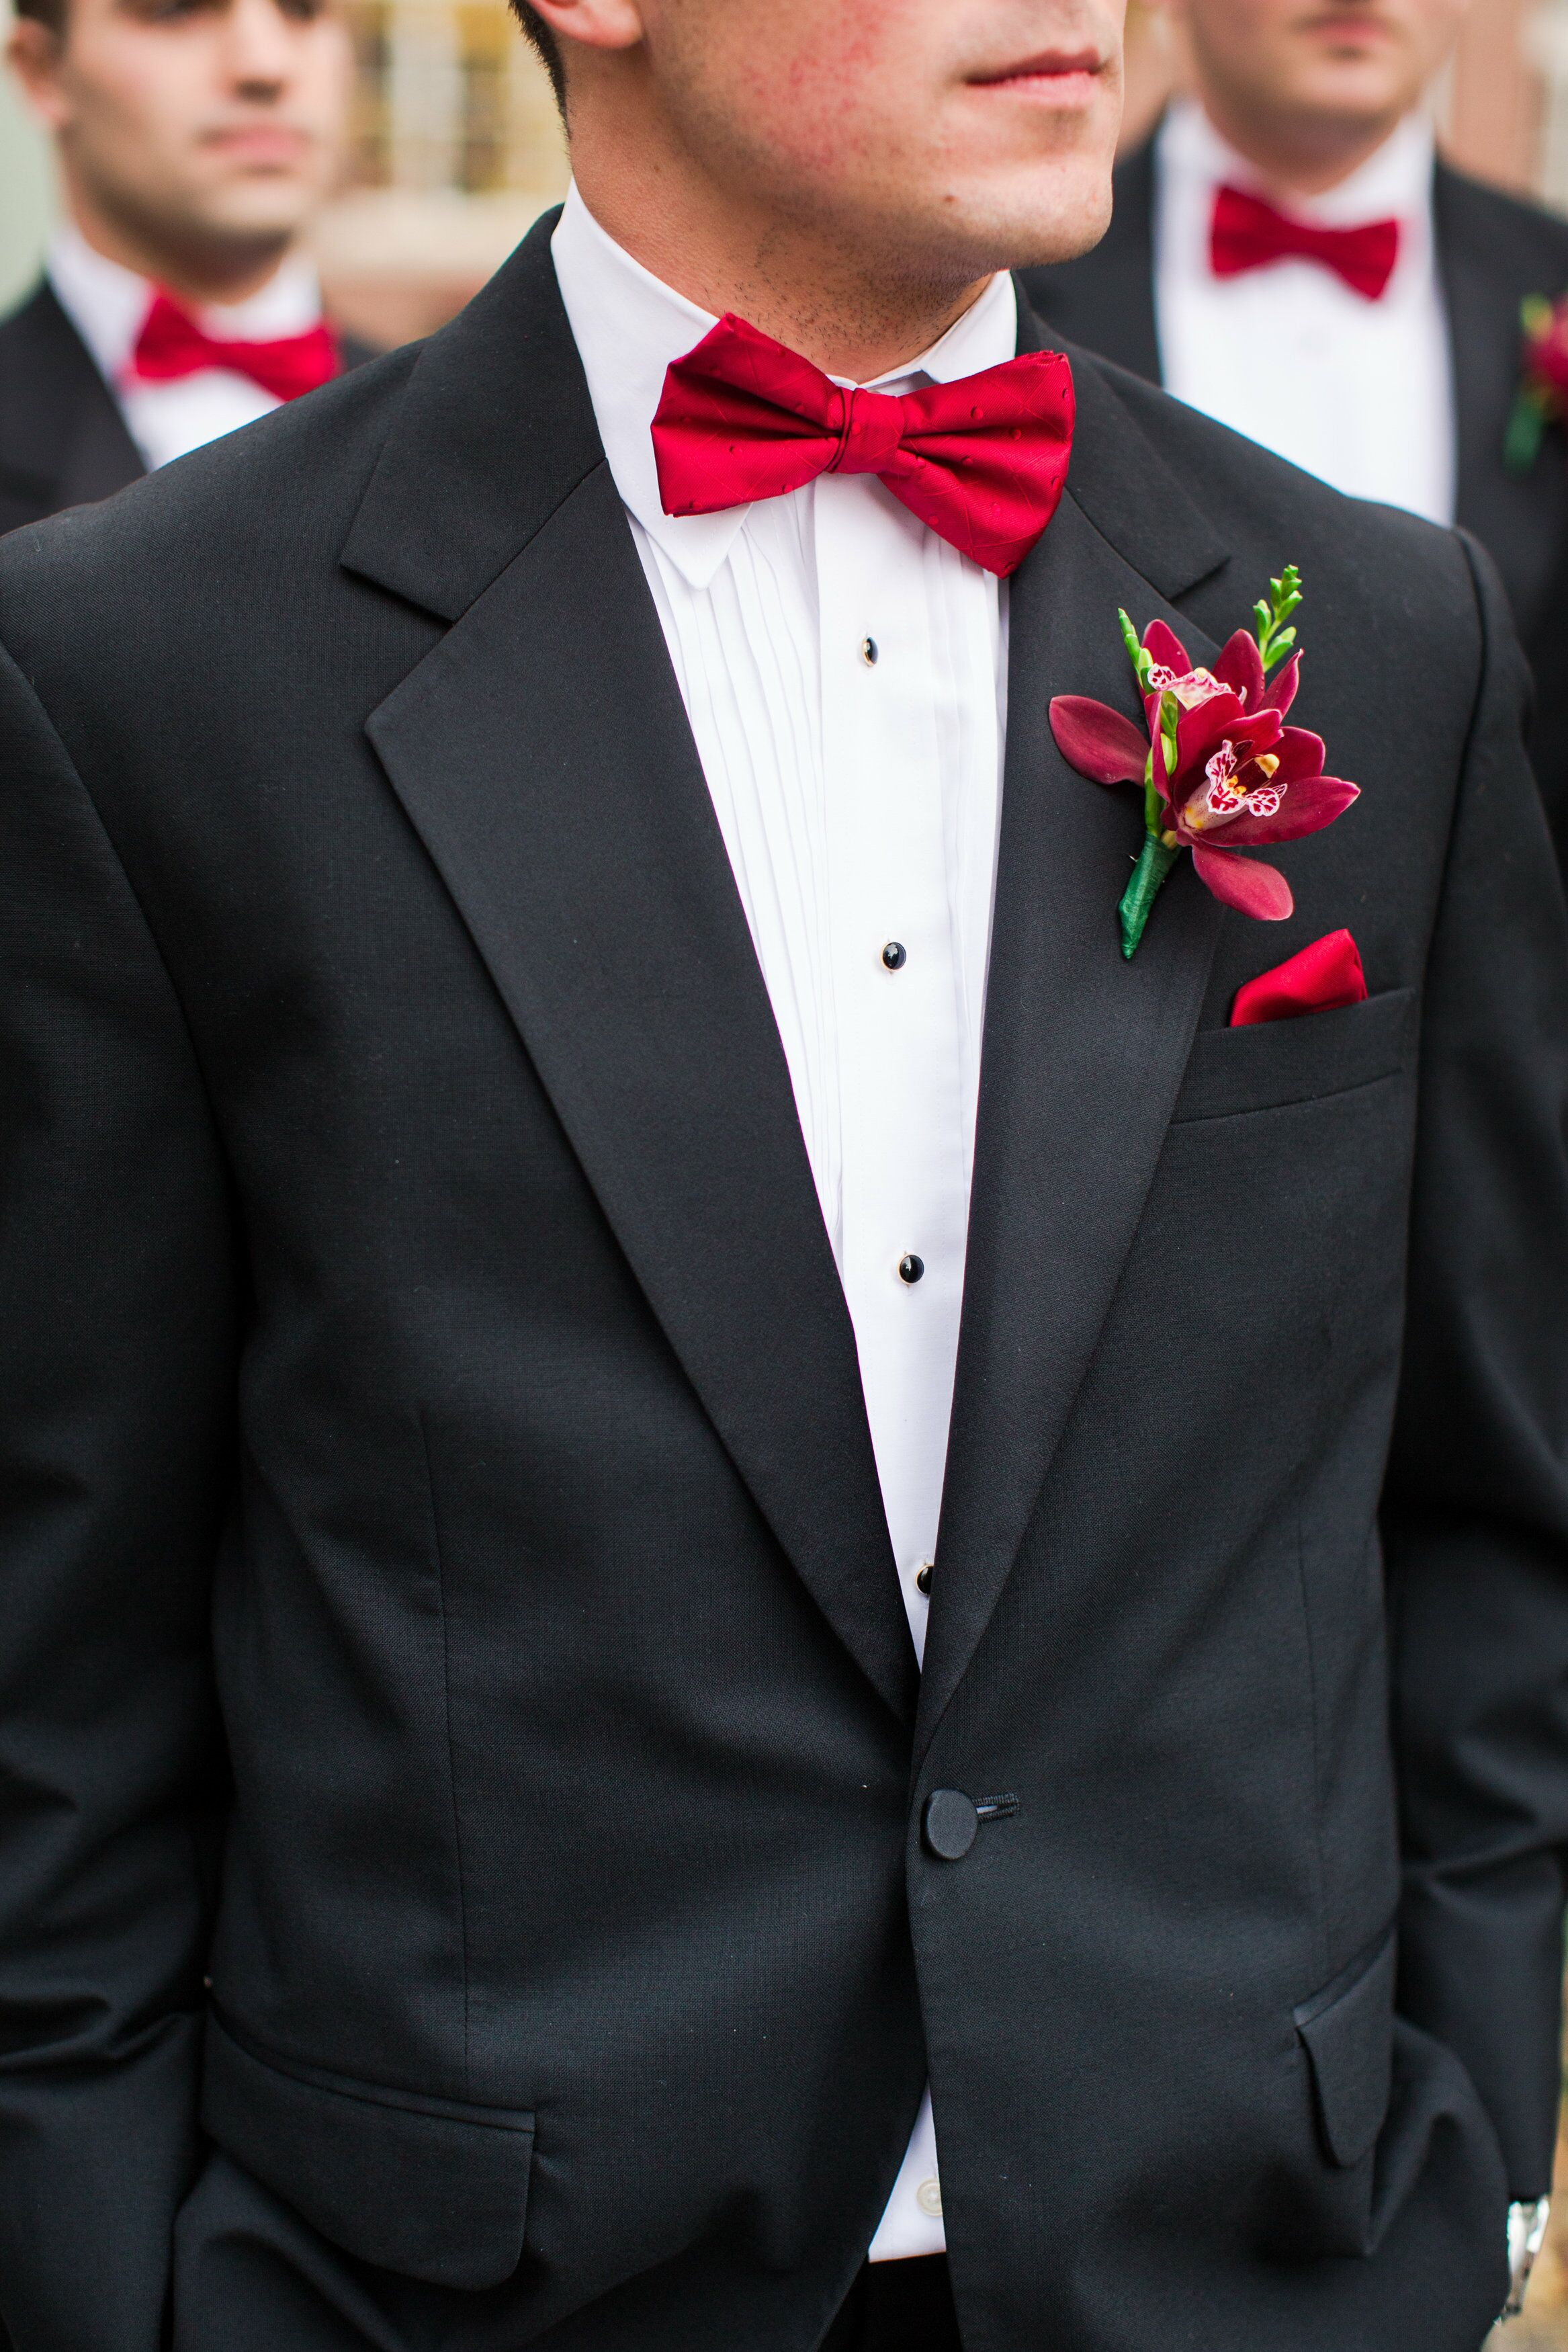 Shirt And Tie Combinations With A Black Suit Begin by making sure that your suit fits correctly, this is imperative so you can look your best. A black tie is a fool-proof addition to your look, no matter what other colour combinations you have going on.